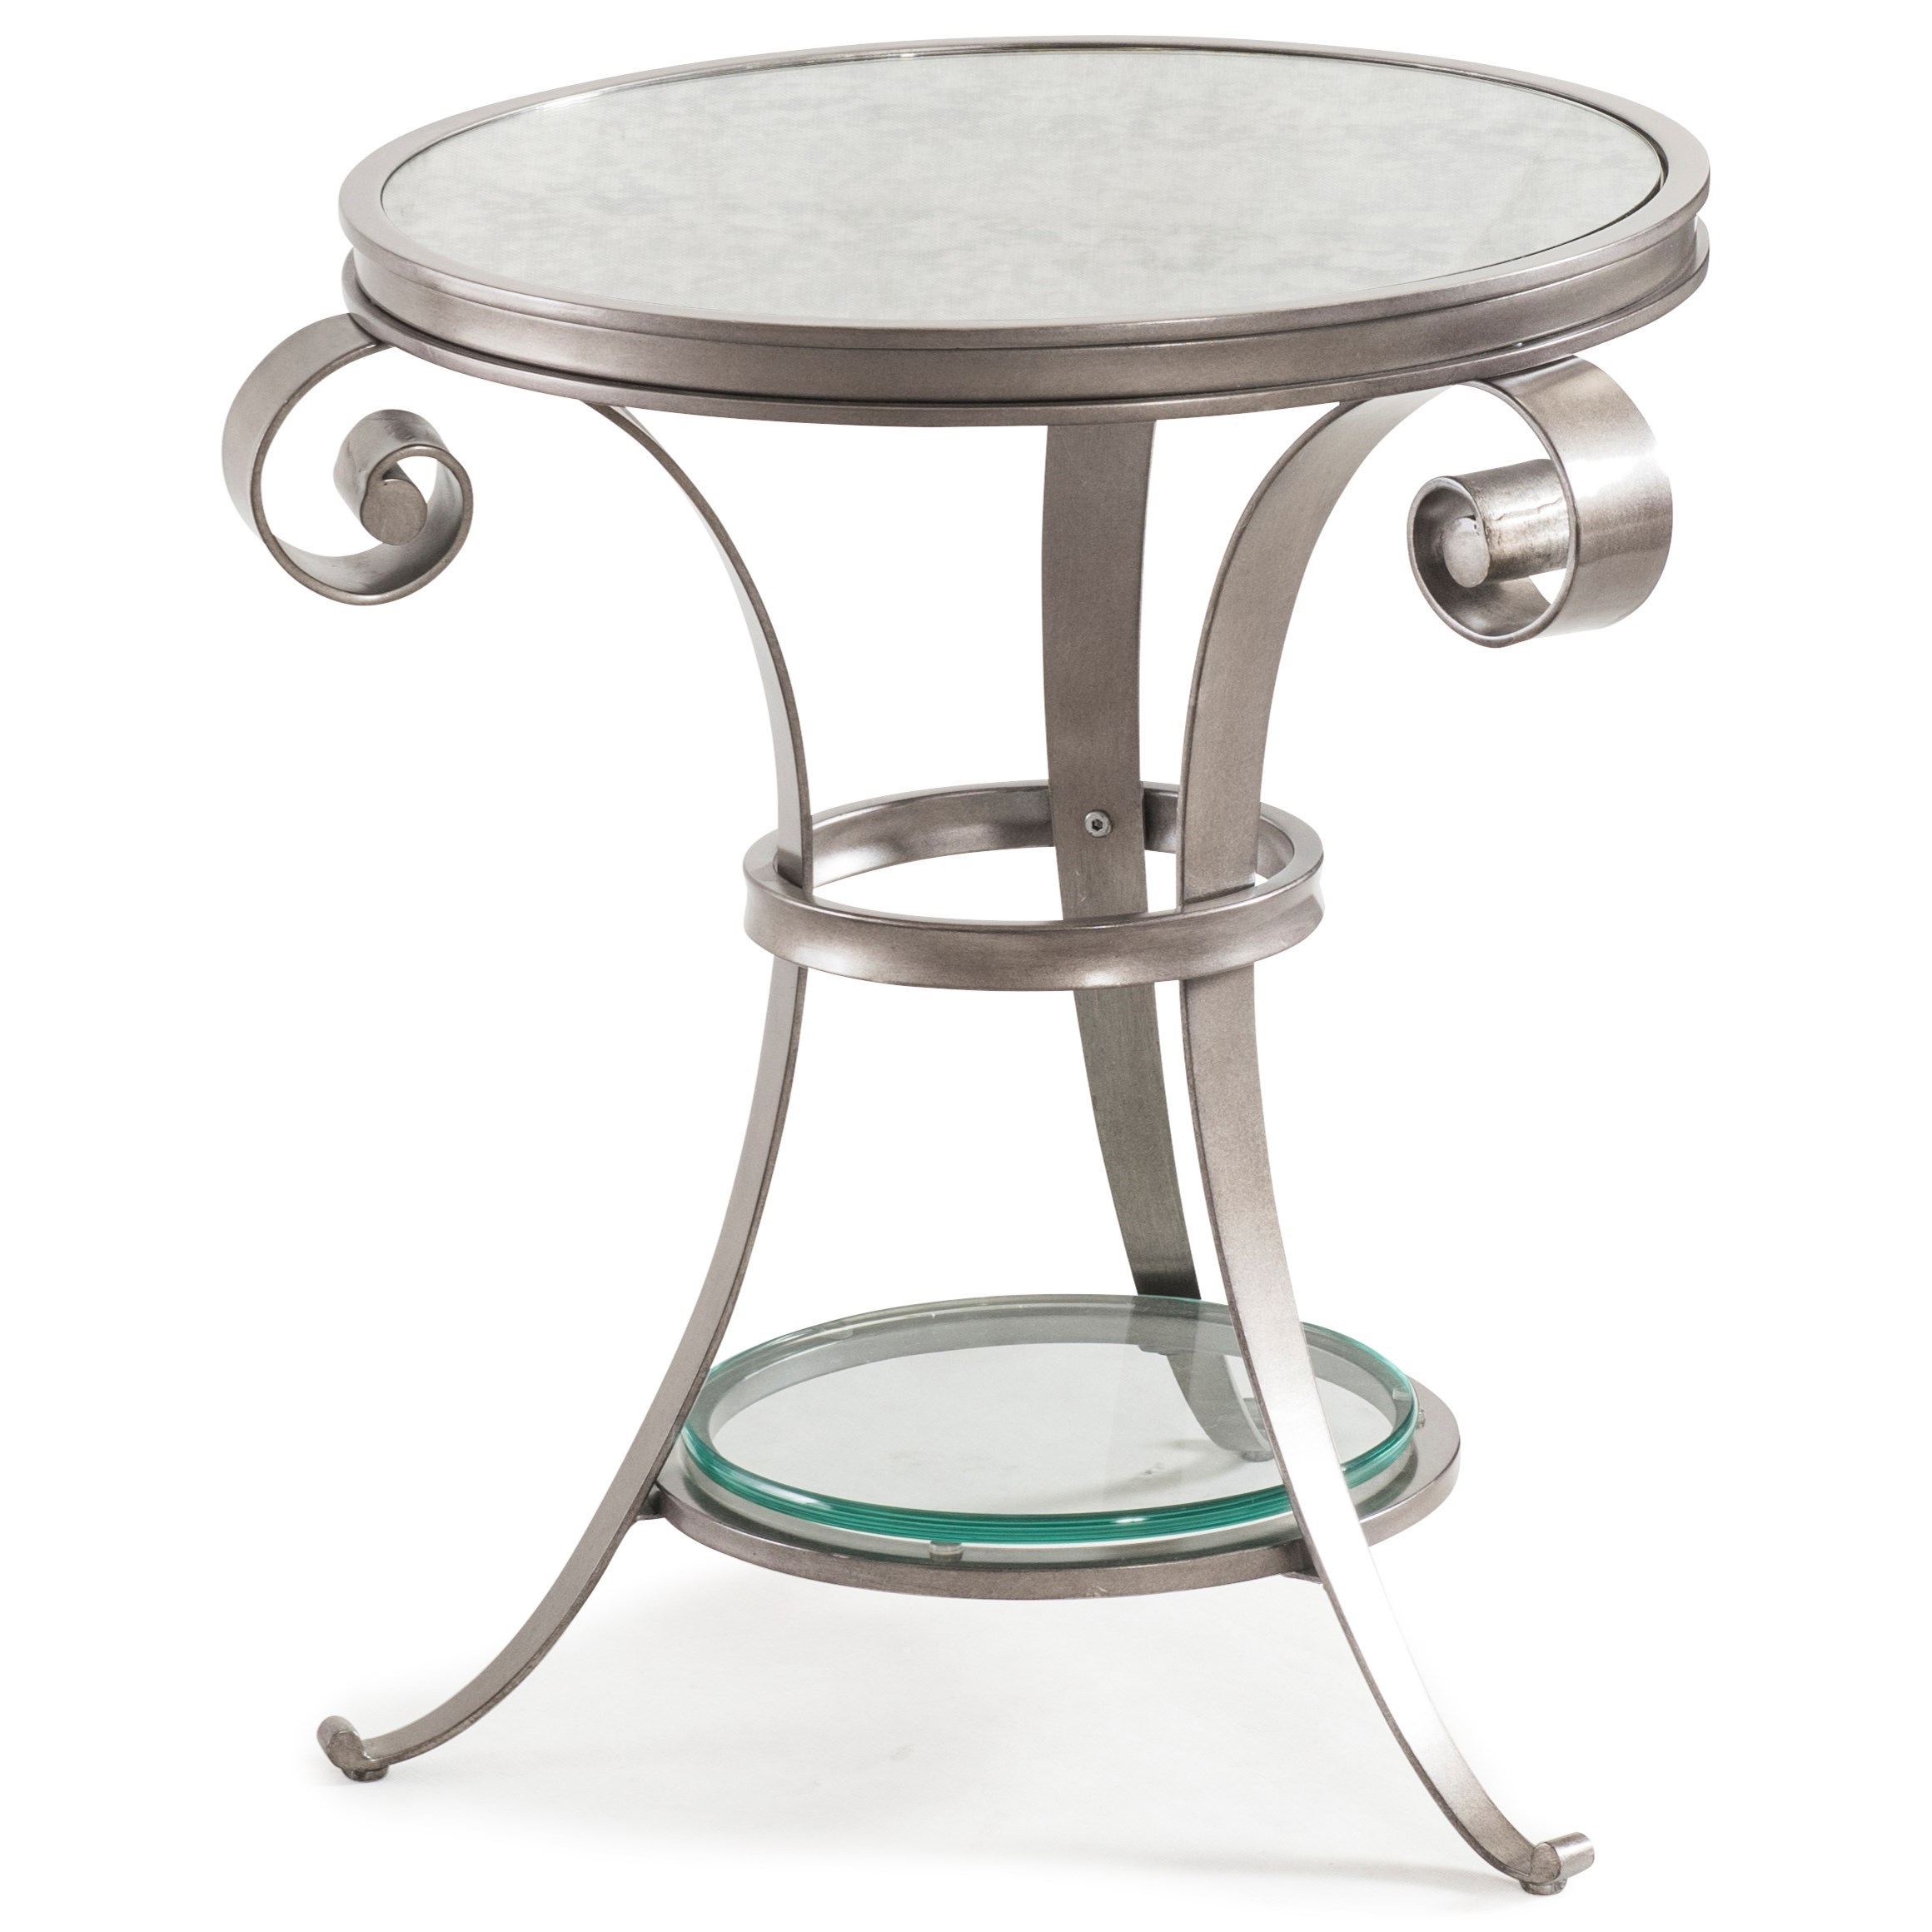 Trisha Yearwood Home Collectionklaussner Jasper County 791 810 Throughout Well Liked Jasper Lift Top Cocktail Tables (Gallery 19 of 20)